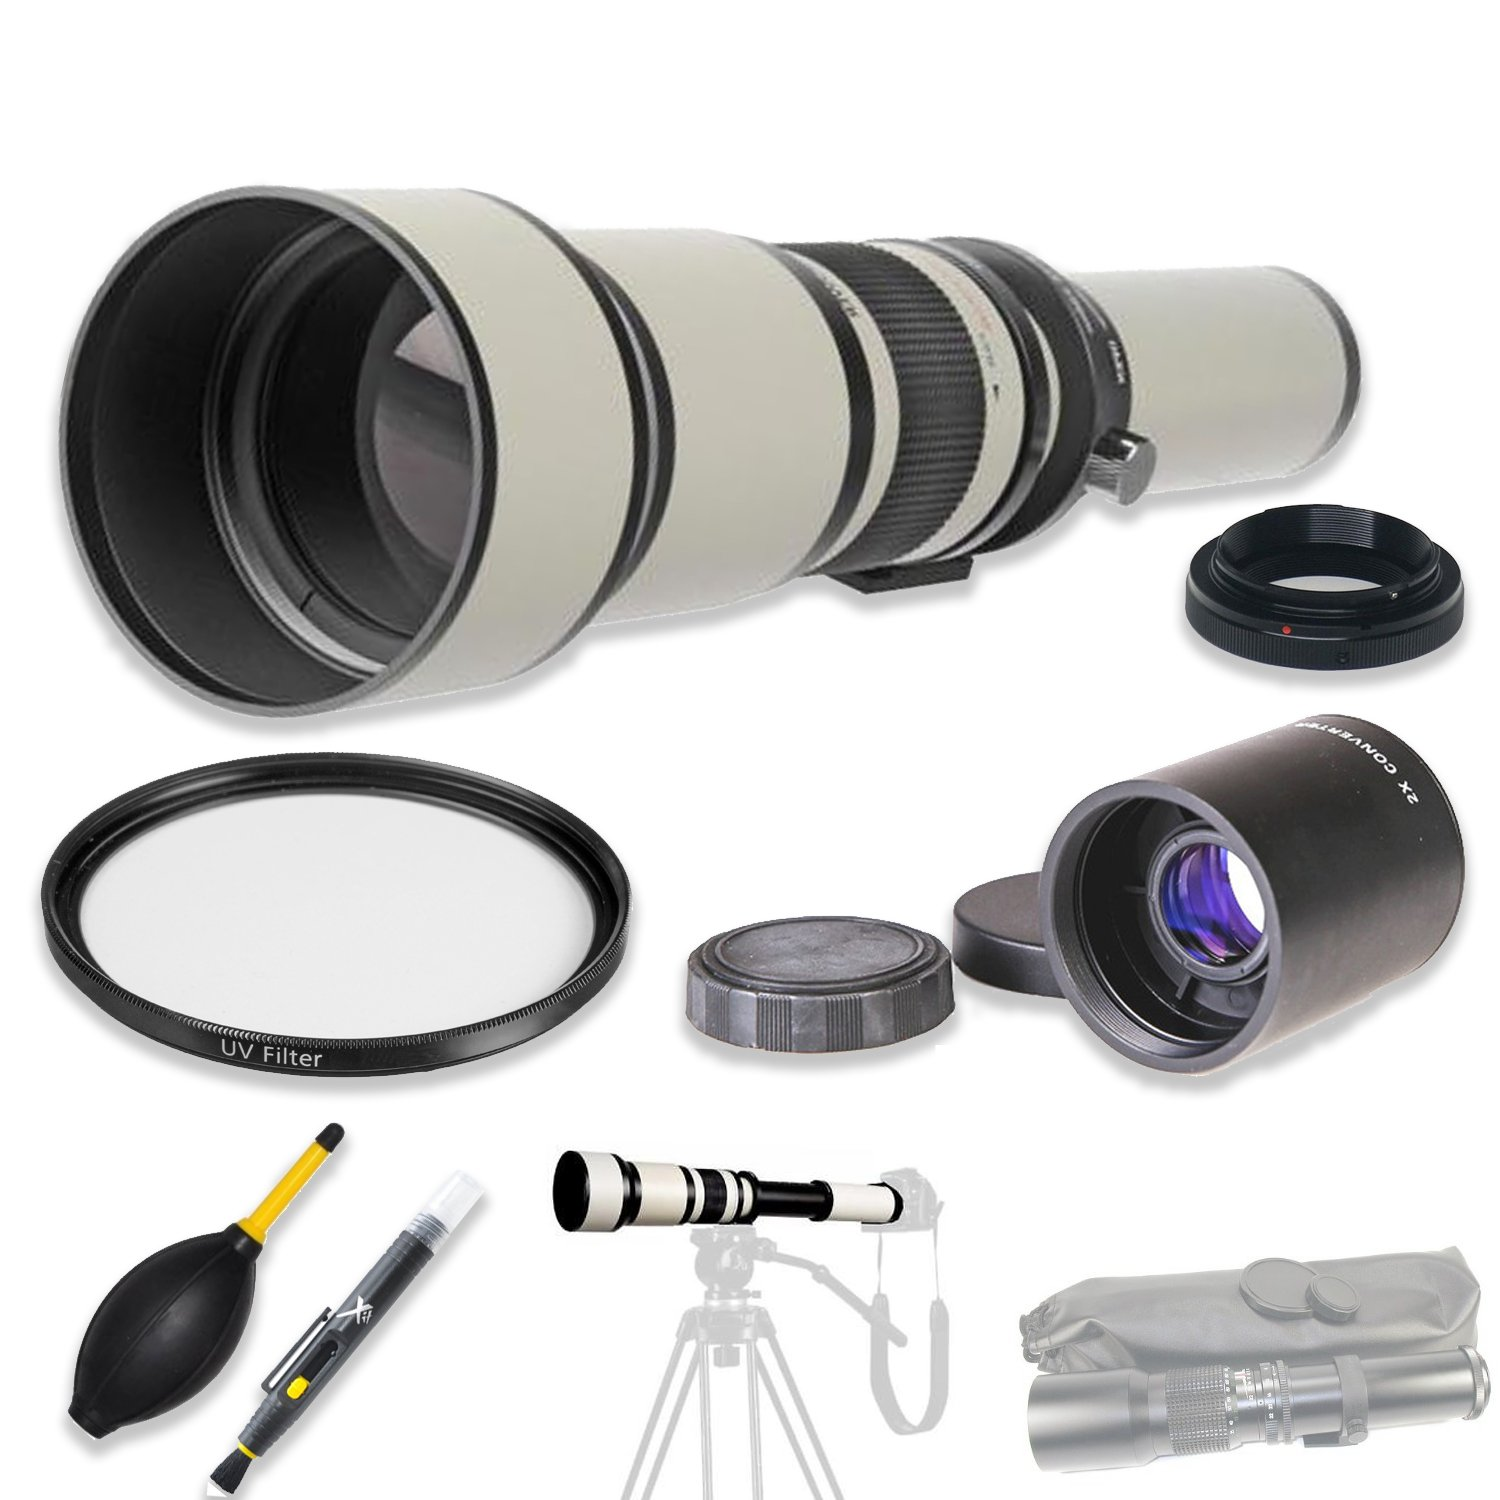 High Definition multi-coated for 650 40d – 1300 mm f 5d/8.0 – 16.0プリセット望遠レンズ+ 2 x Teleconverter & Accessories for Canon EOS DSLRs Including EOS 1d 5d 6d 7d 40d 50d 60d 70d 77d 80d 450d 500d 550d 600d 650d B07DX7JL3L, GReeD:8bdad3c4 --- ijpba.info